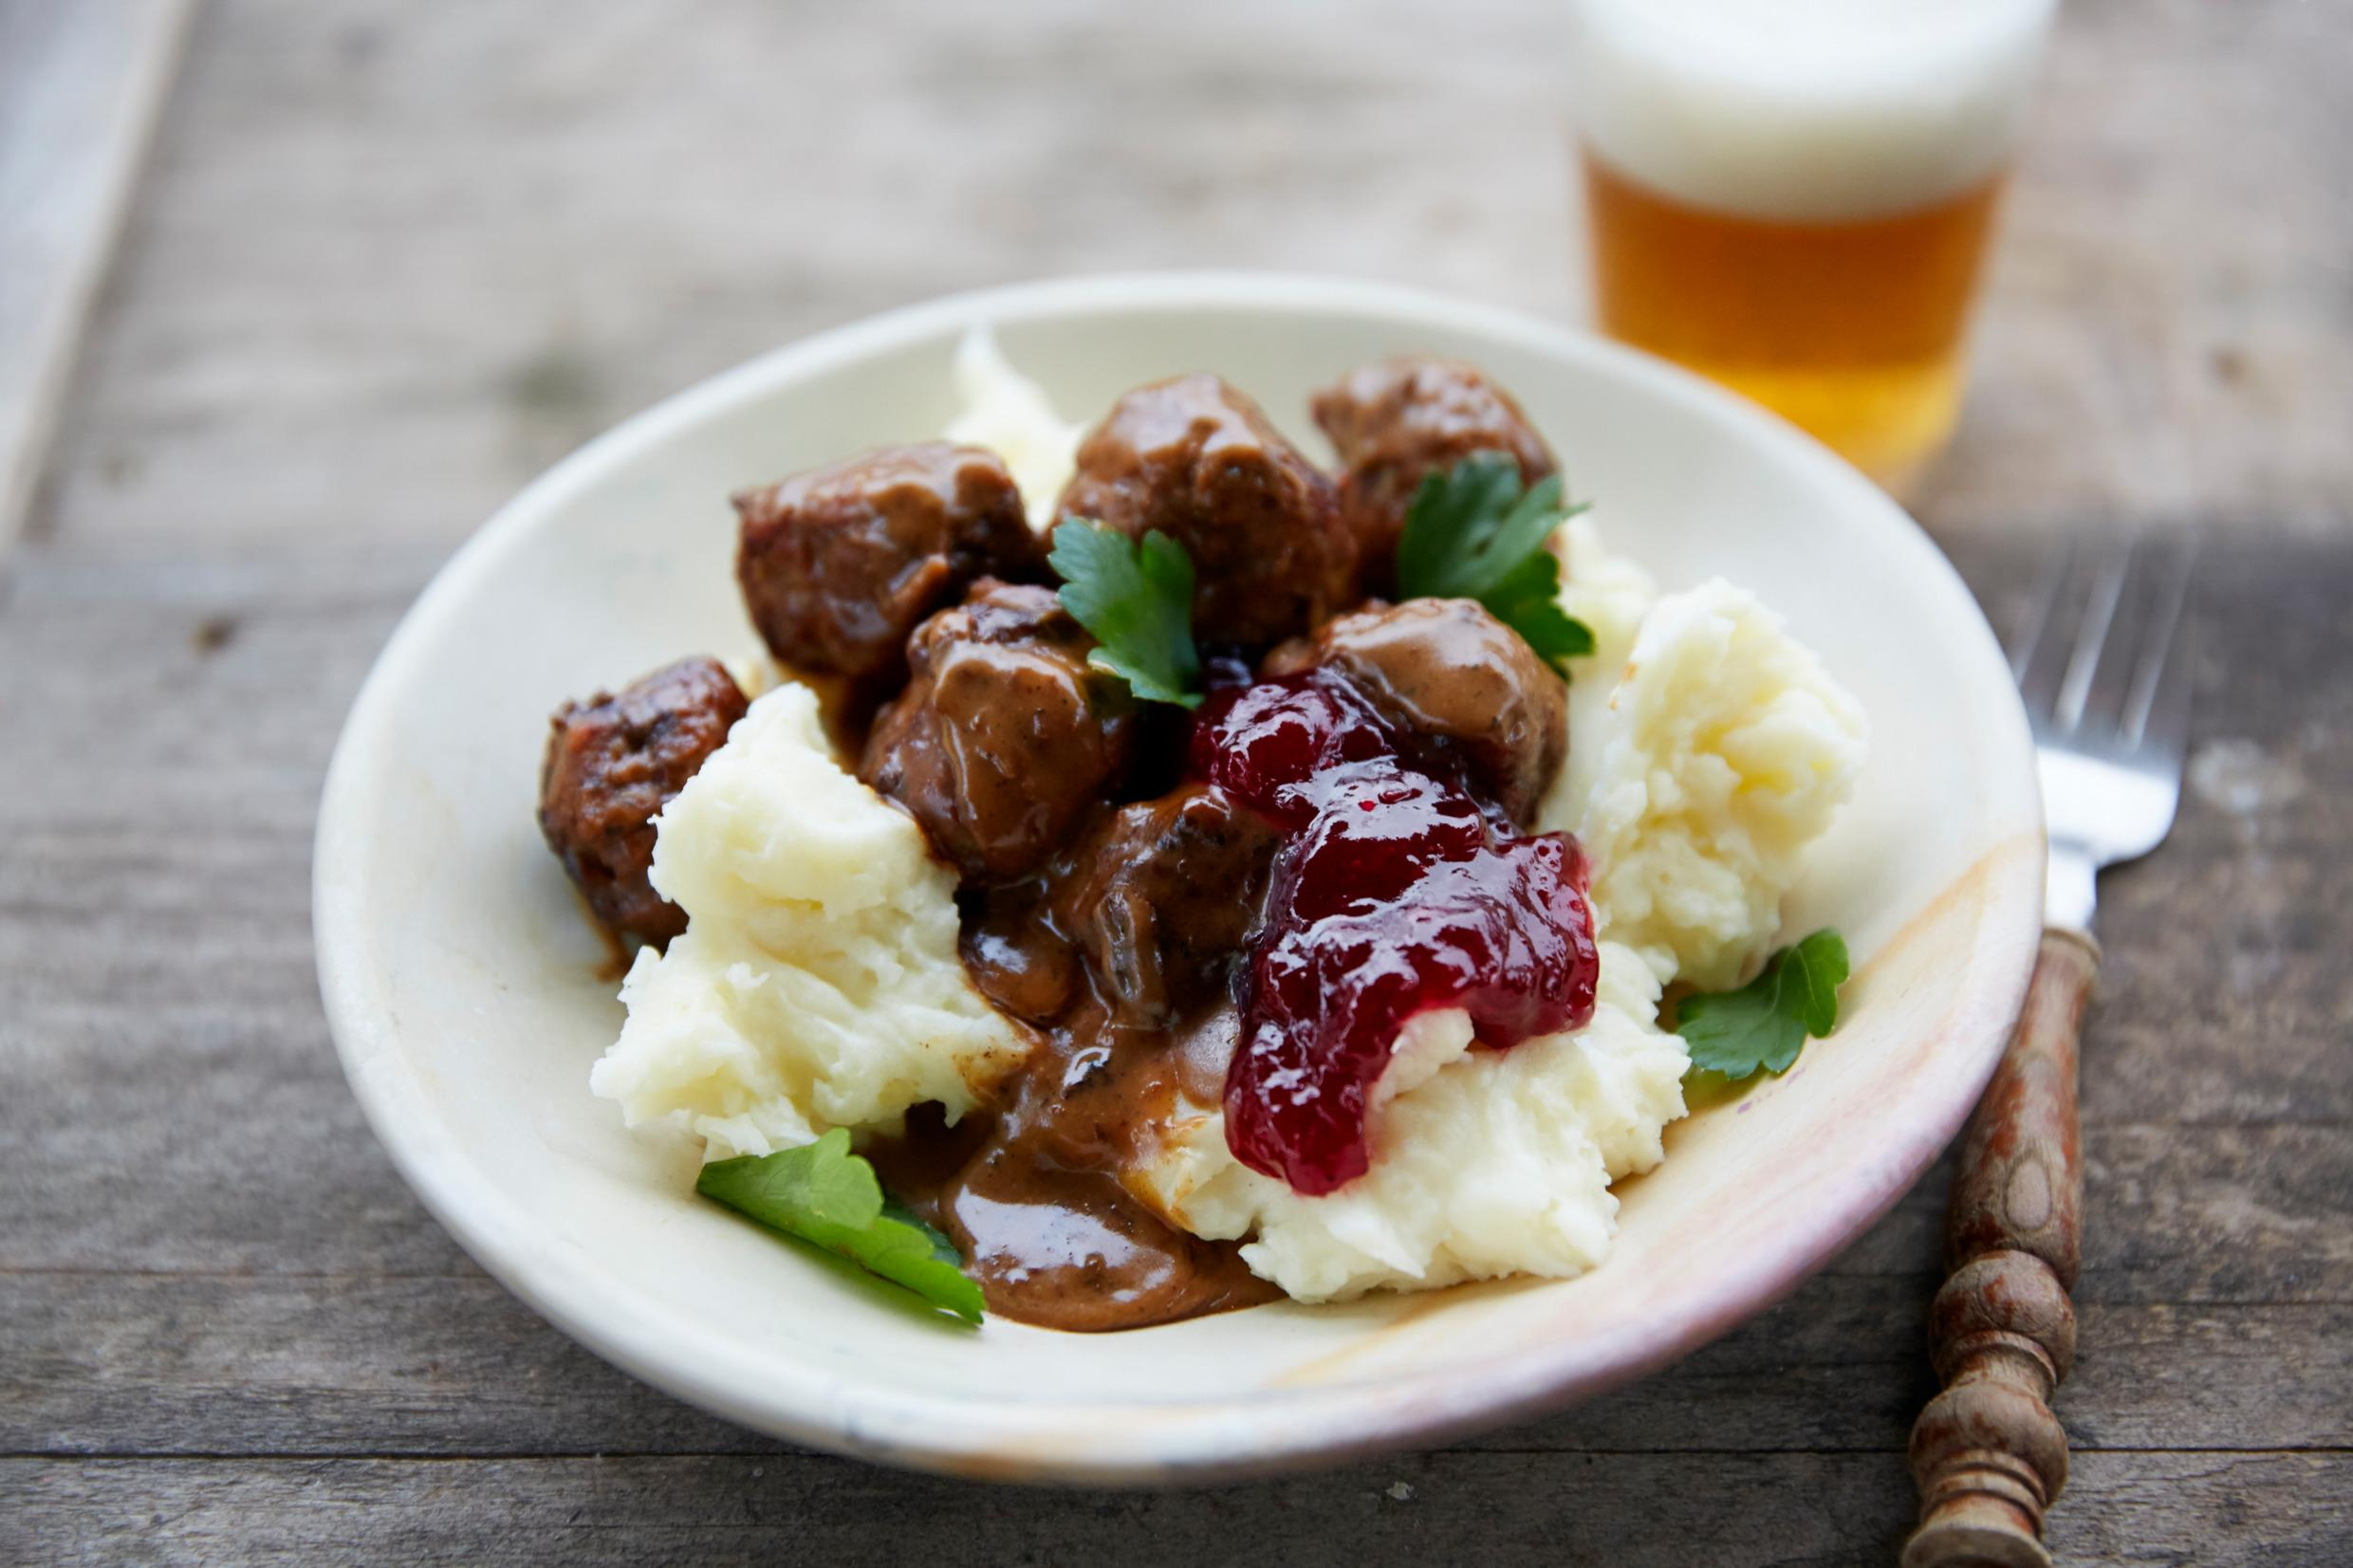 Traditional Swedish meatballs with mashed potatoes and lingonberries |  Visit Sweden